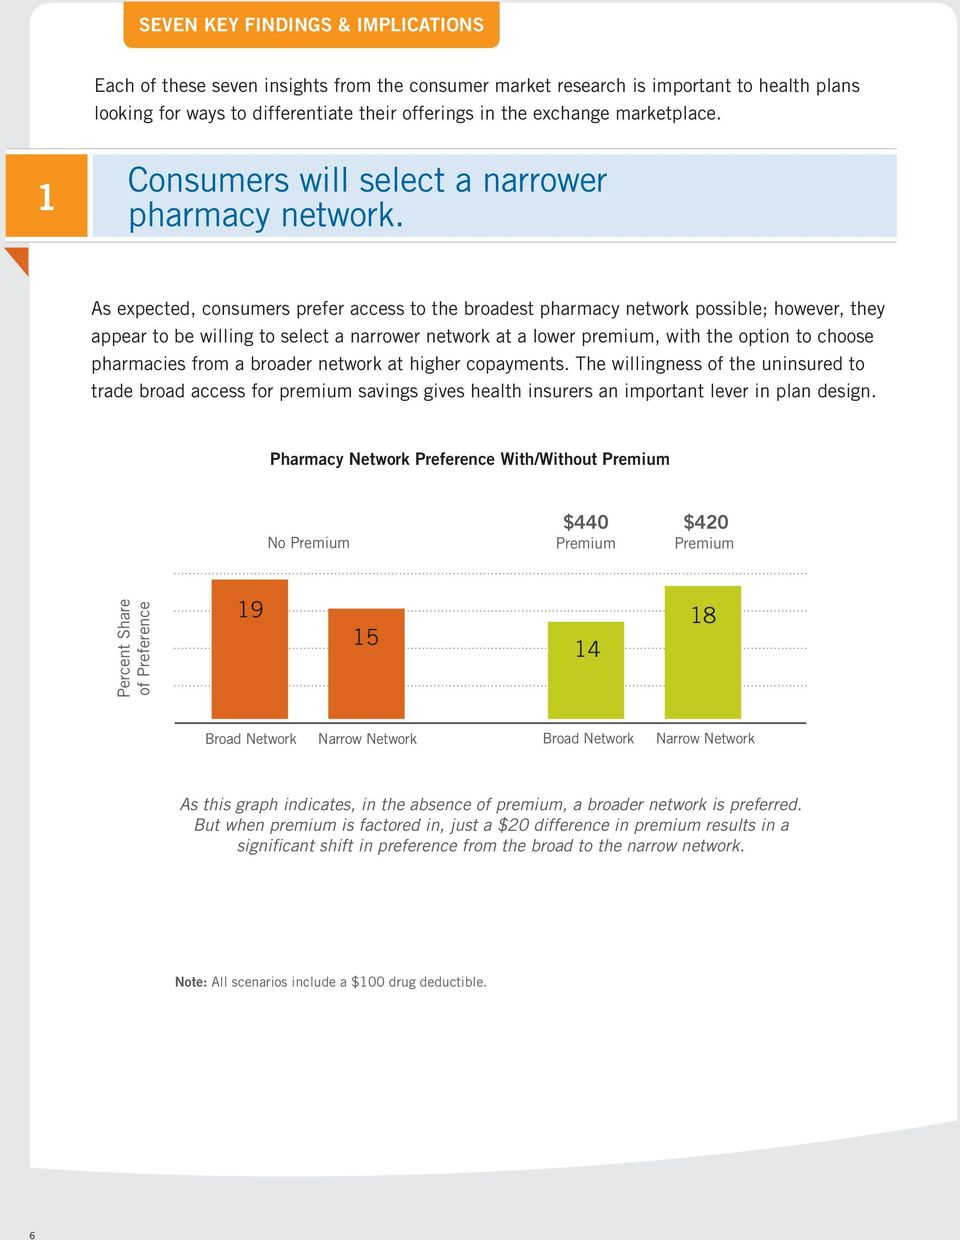 As expected, consumers prefer access to the broadest pharmacy network possible; however, they appear to be willing to select a narrower network at a lower premium, with the option to choose